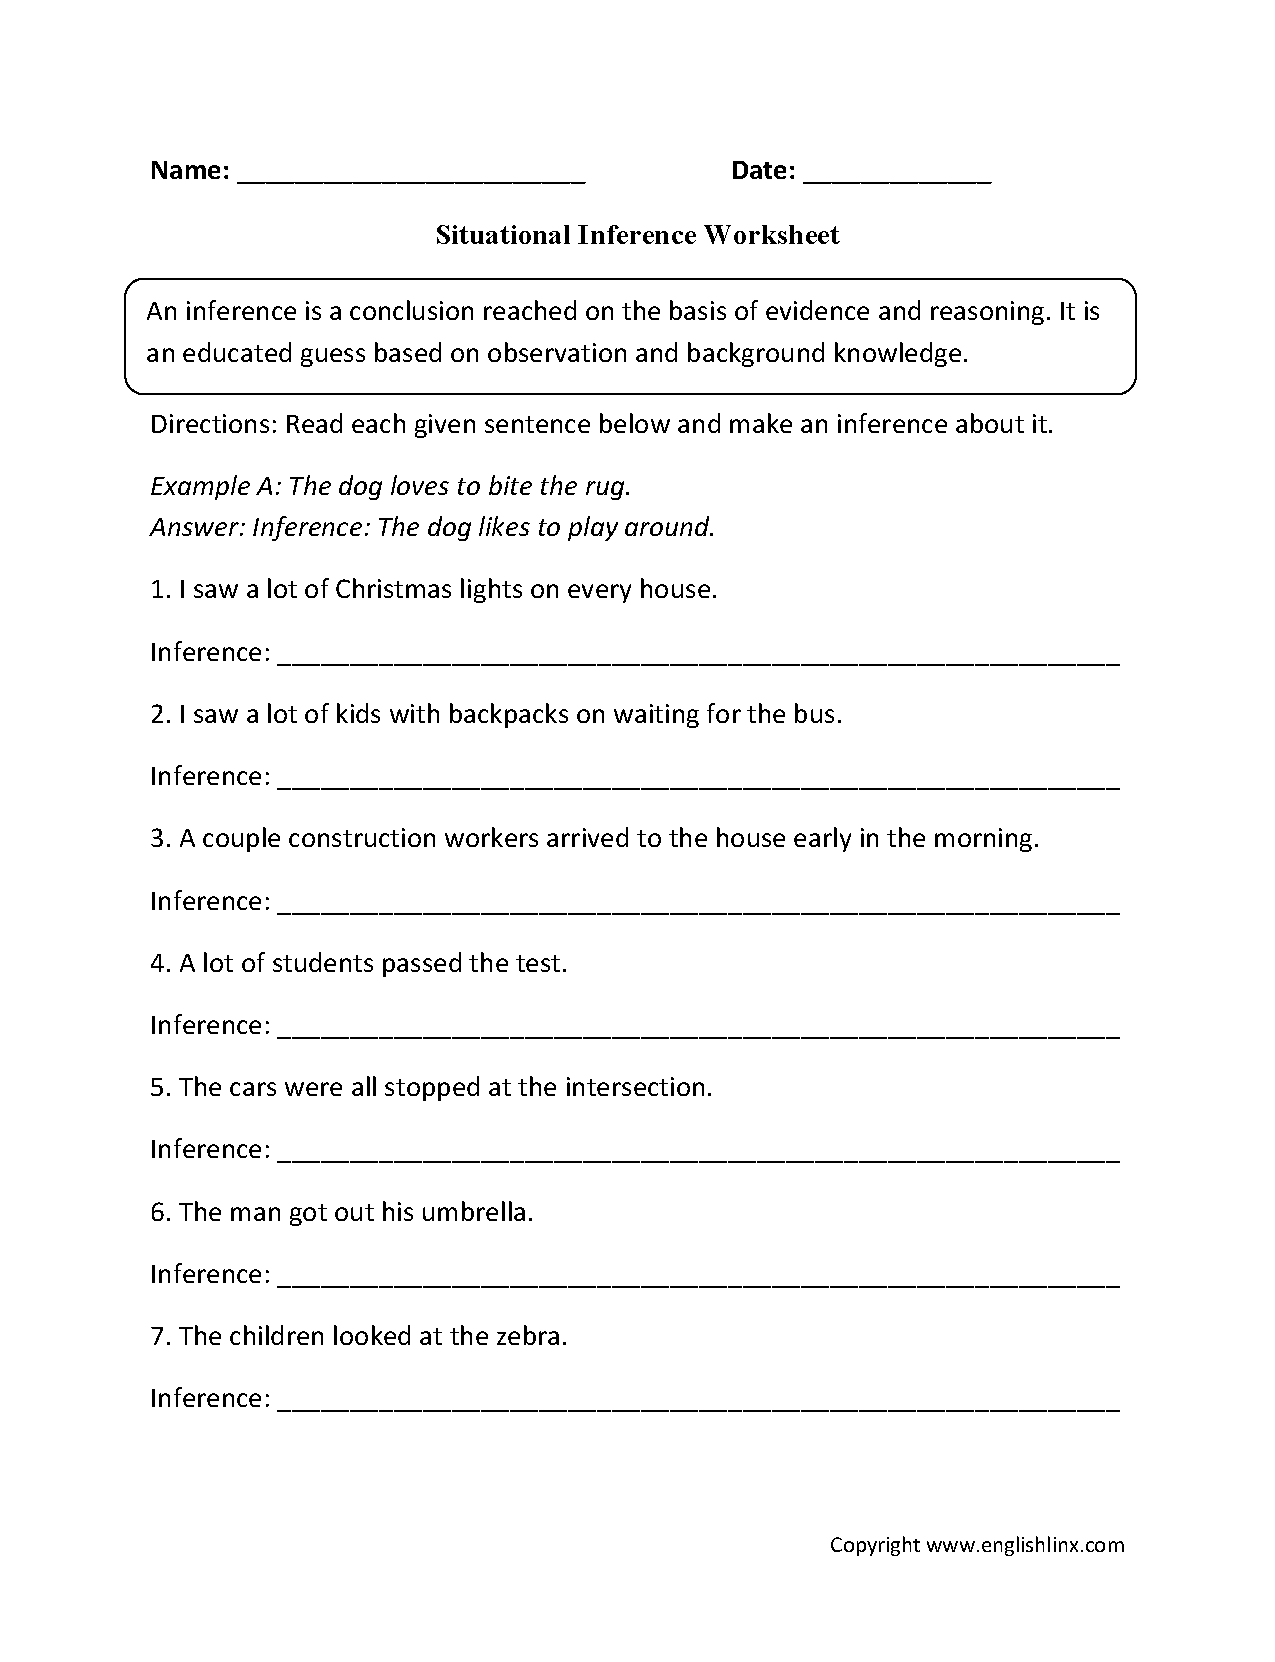 worksheet Fun Reading Worksheets reading worksheets inference worksheets